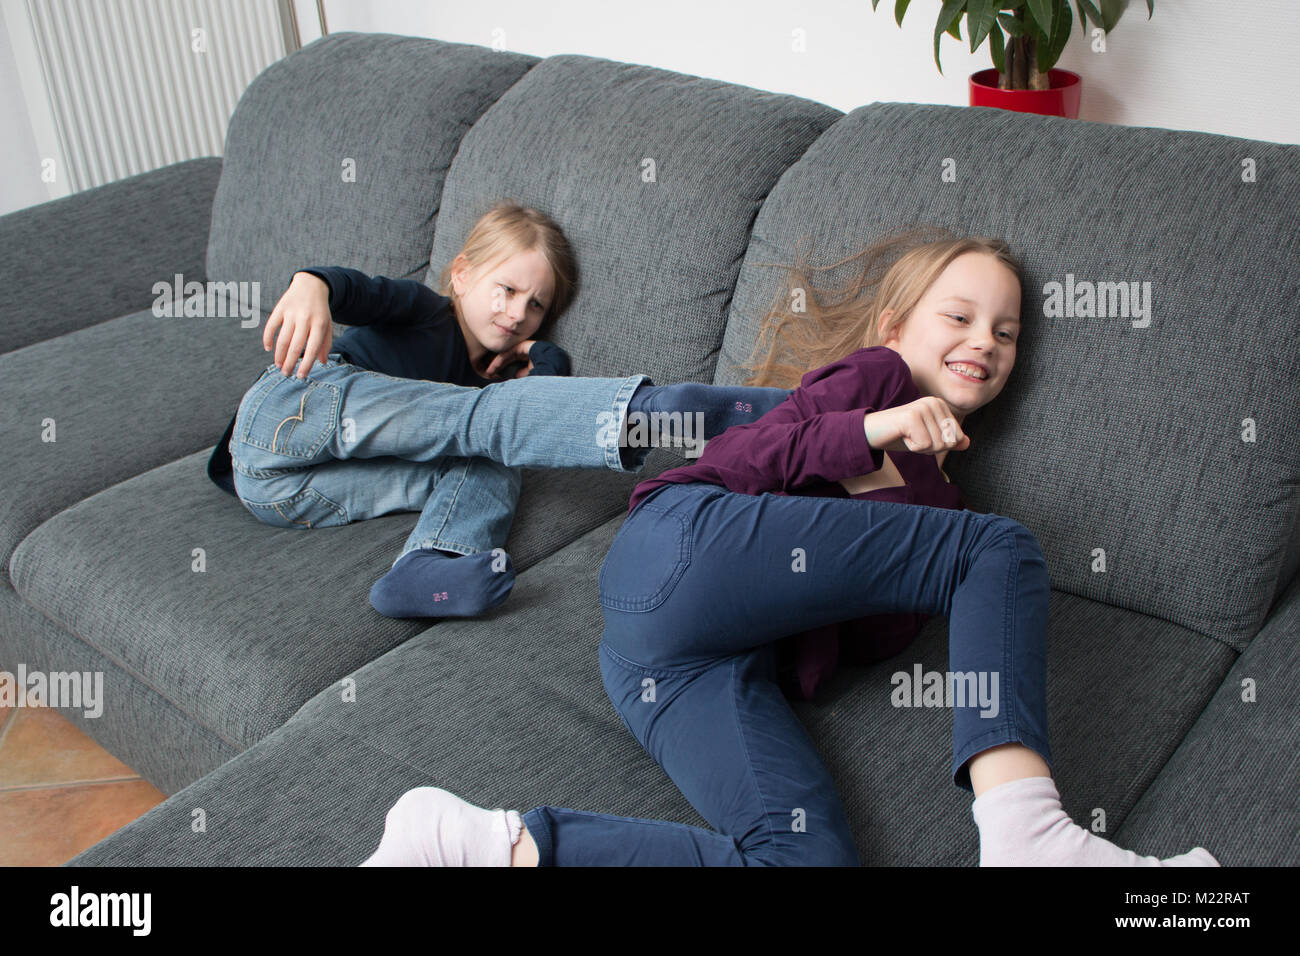 7-year-old girl steps in the back of her 9-year-old sister - Stock Image